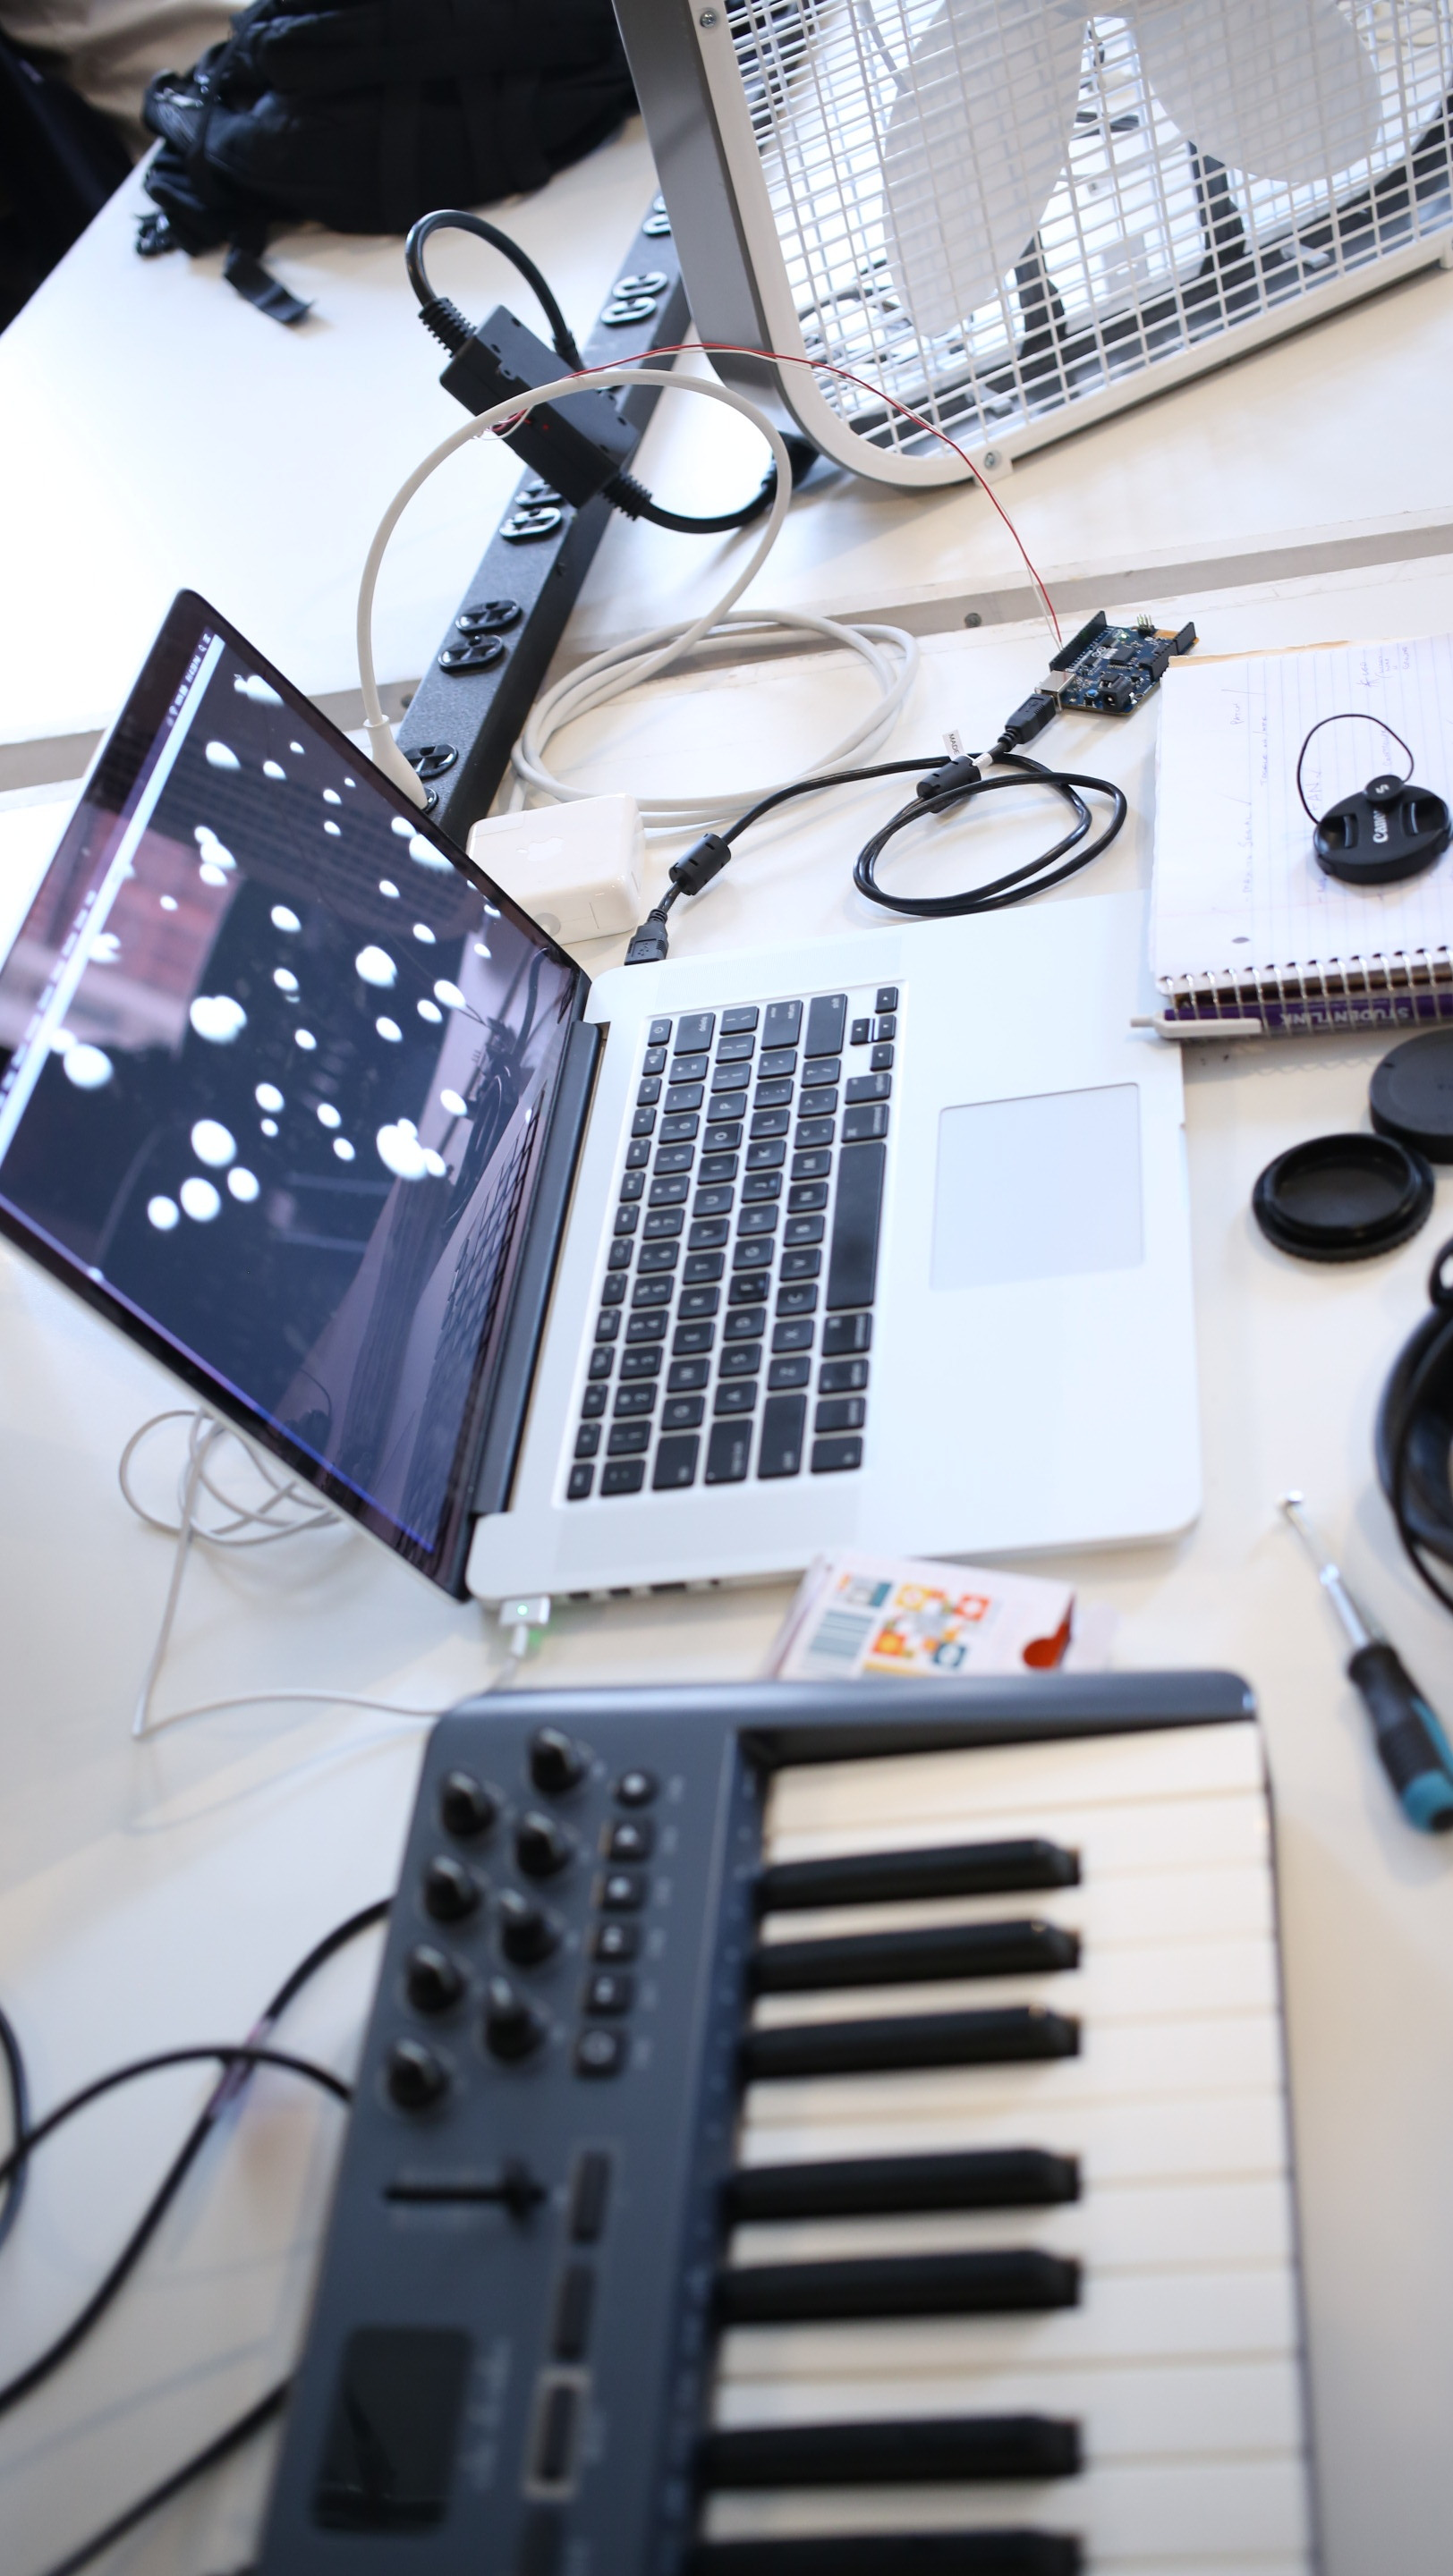 MIDI Controller sends bangs to generate particles in MAX.